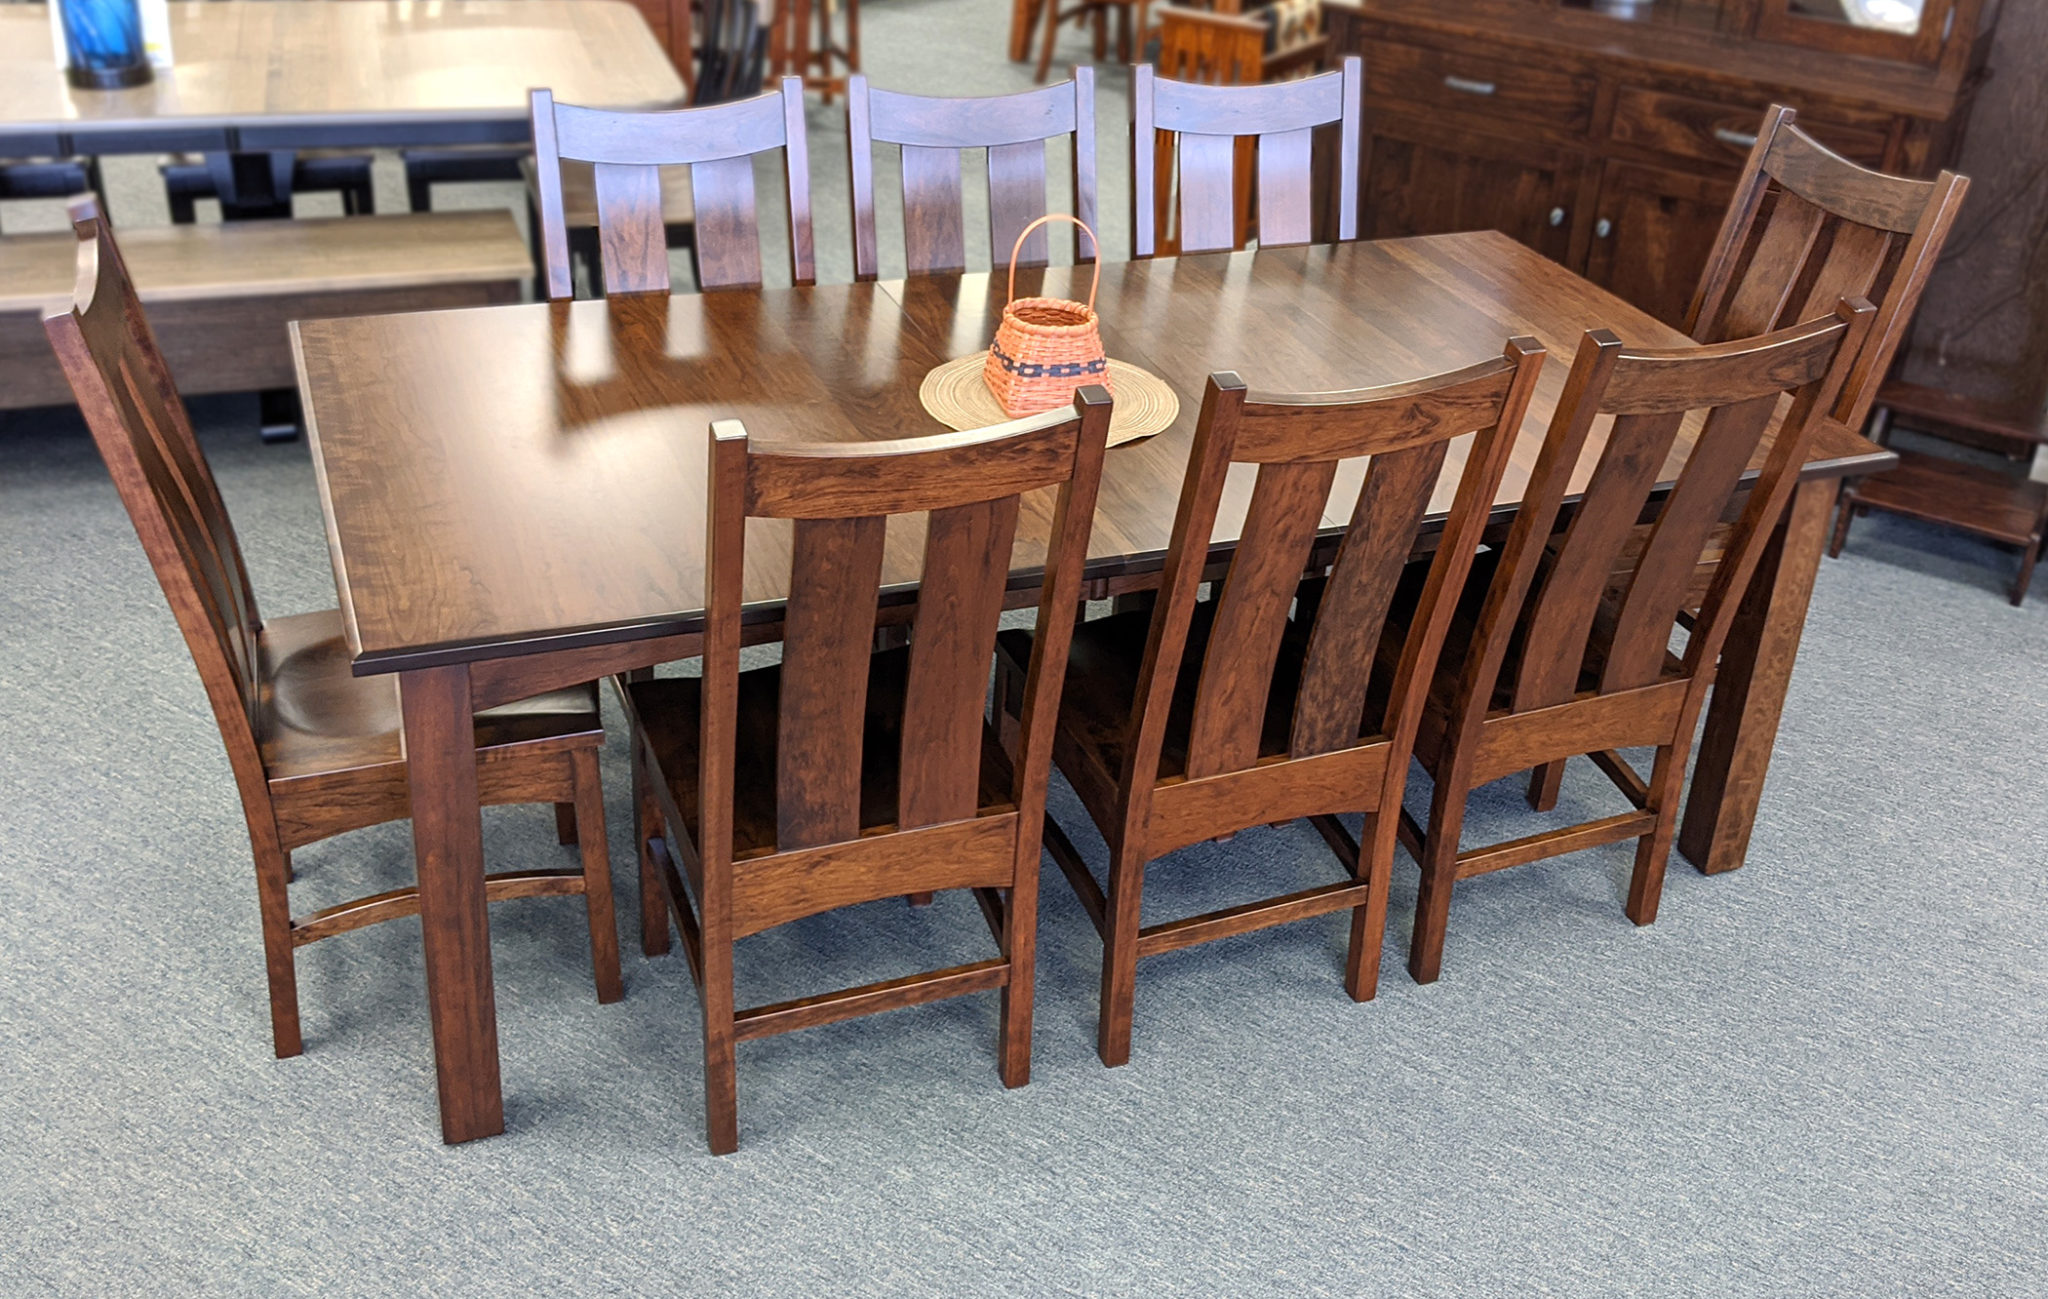 3in Shaker Leg Table With Arched Skirts 2100 X 1333